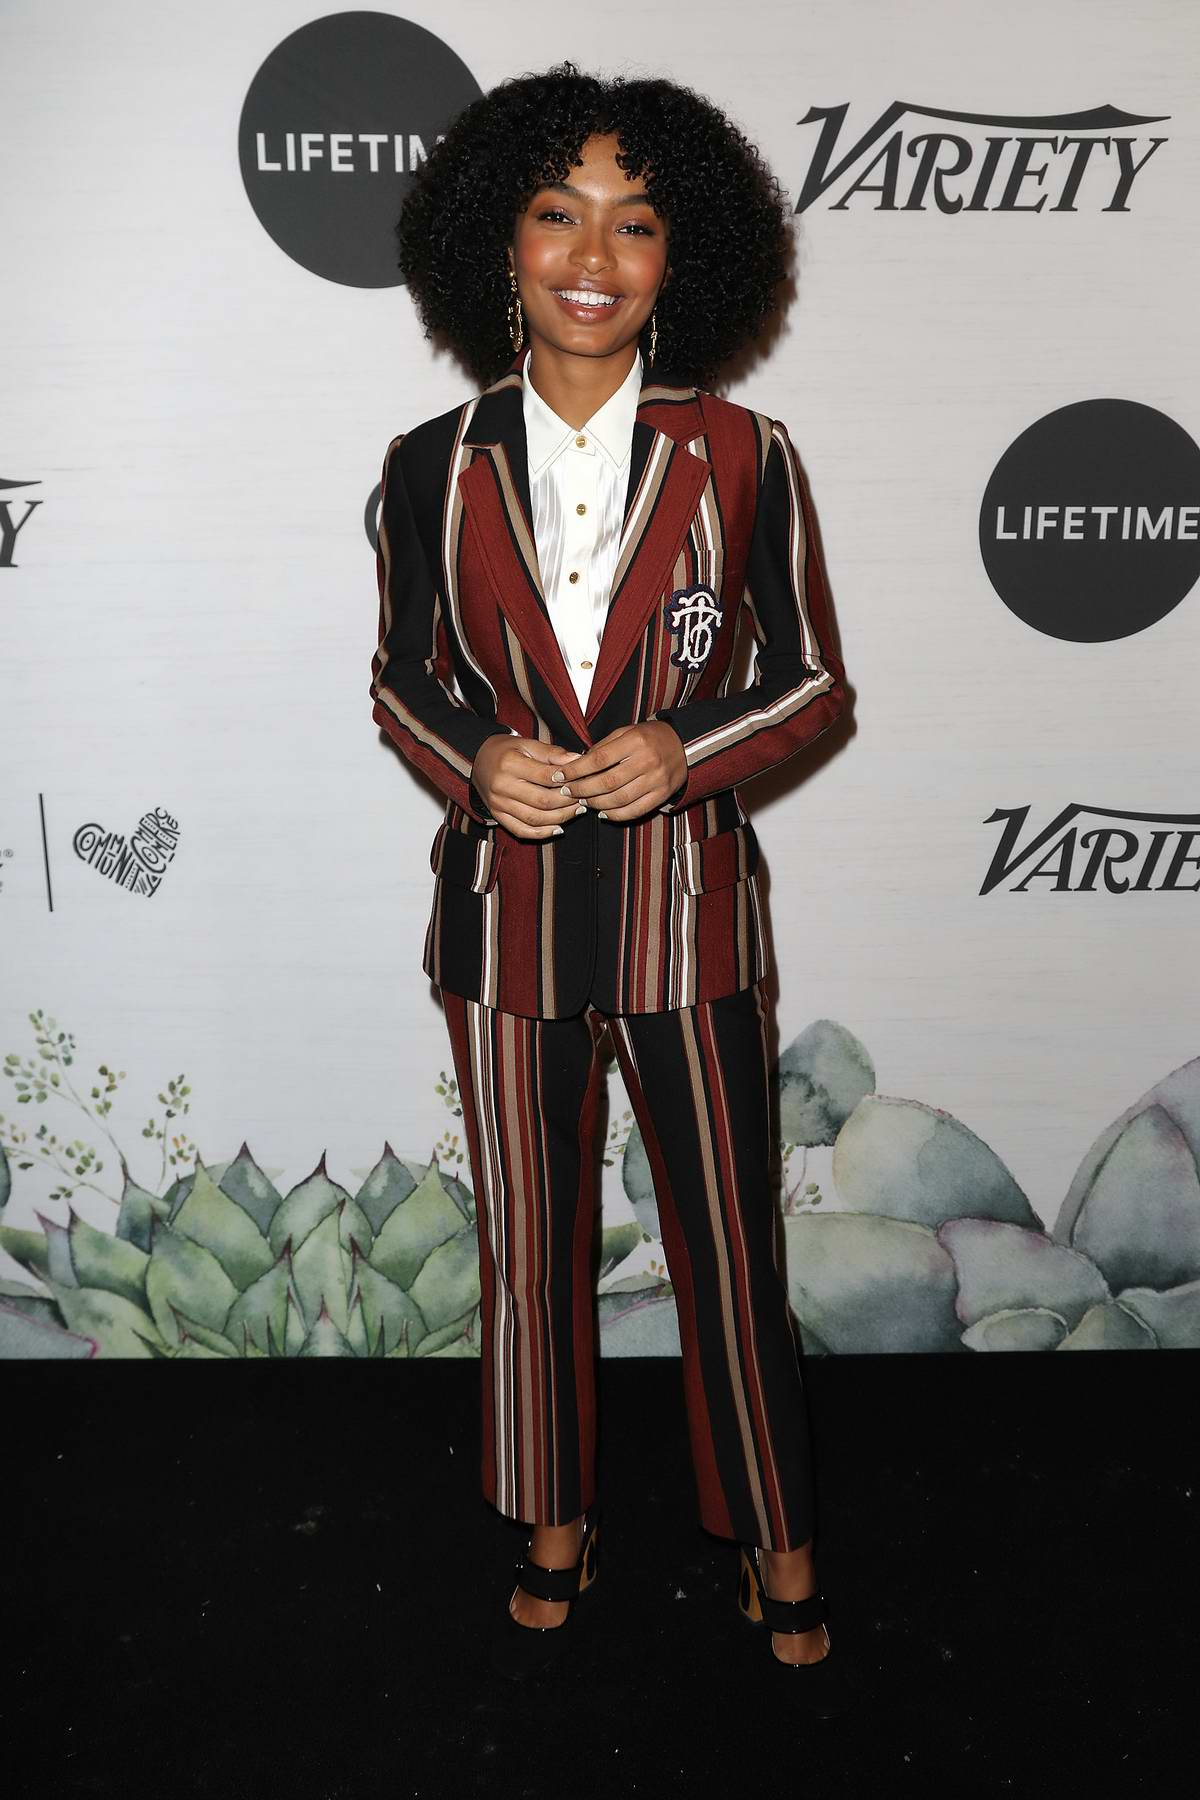 Yara Shahidi attends the 2019 Variety's Power of Women Presented by Lifetime in New York City